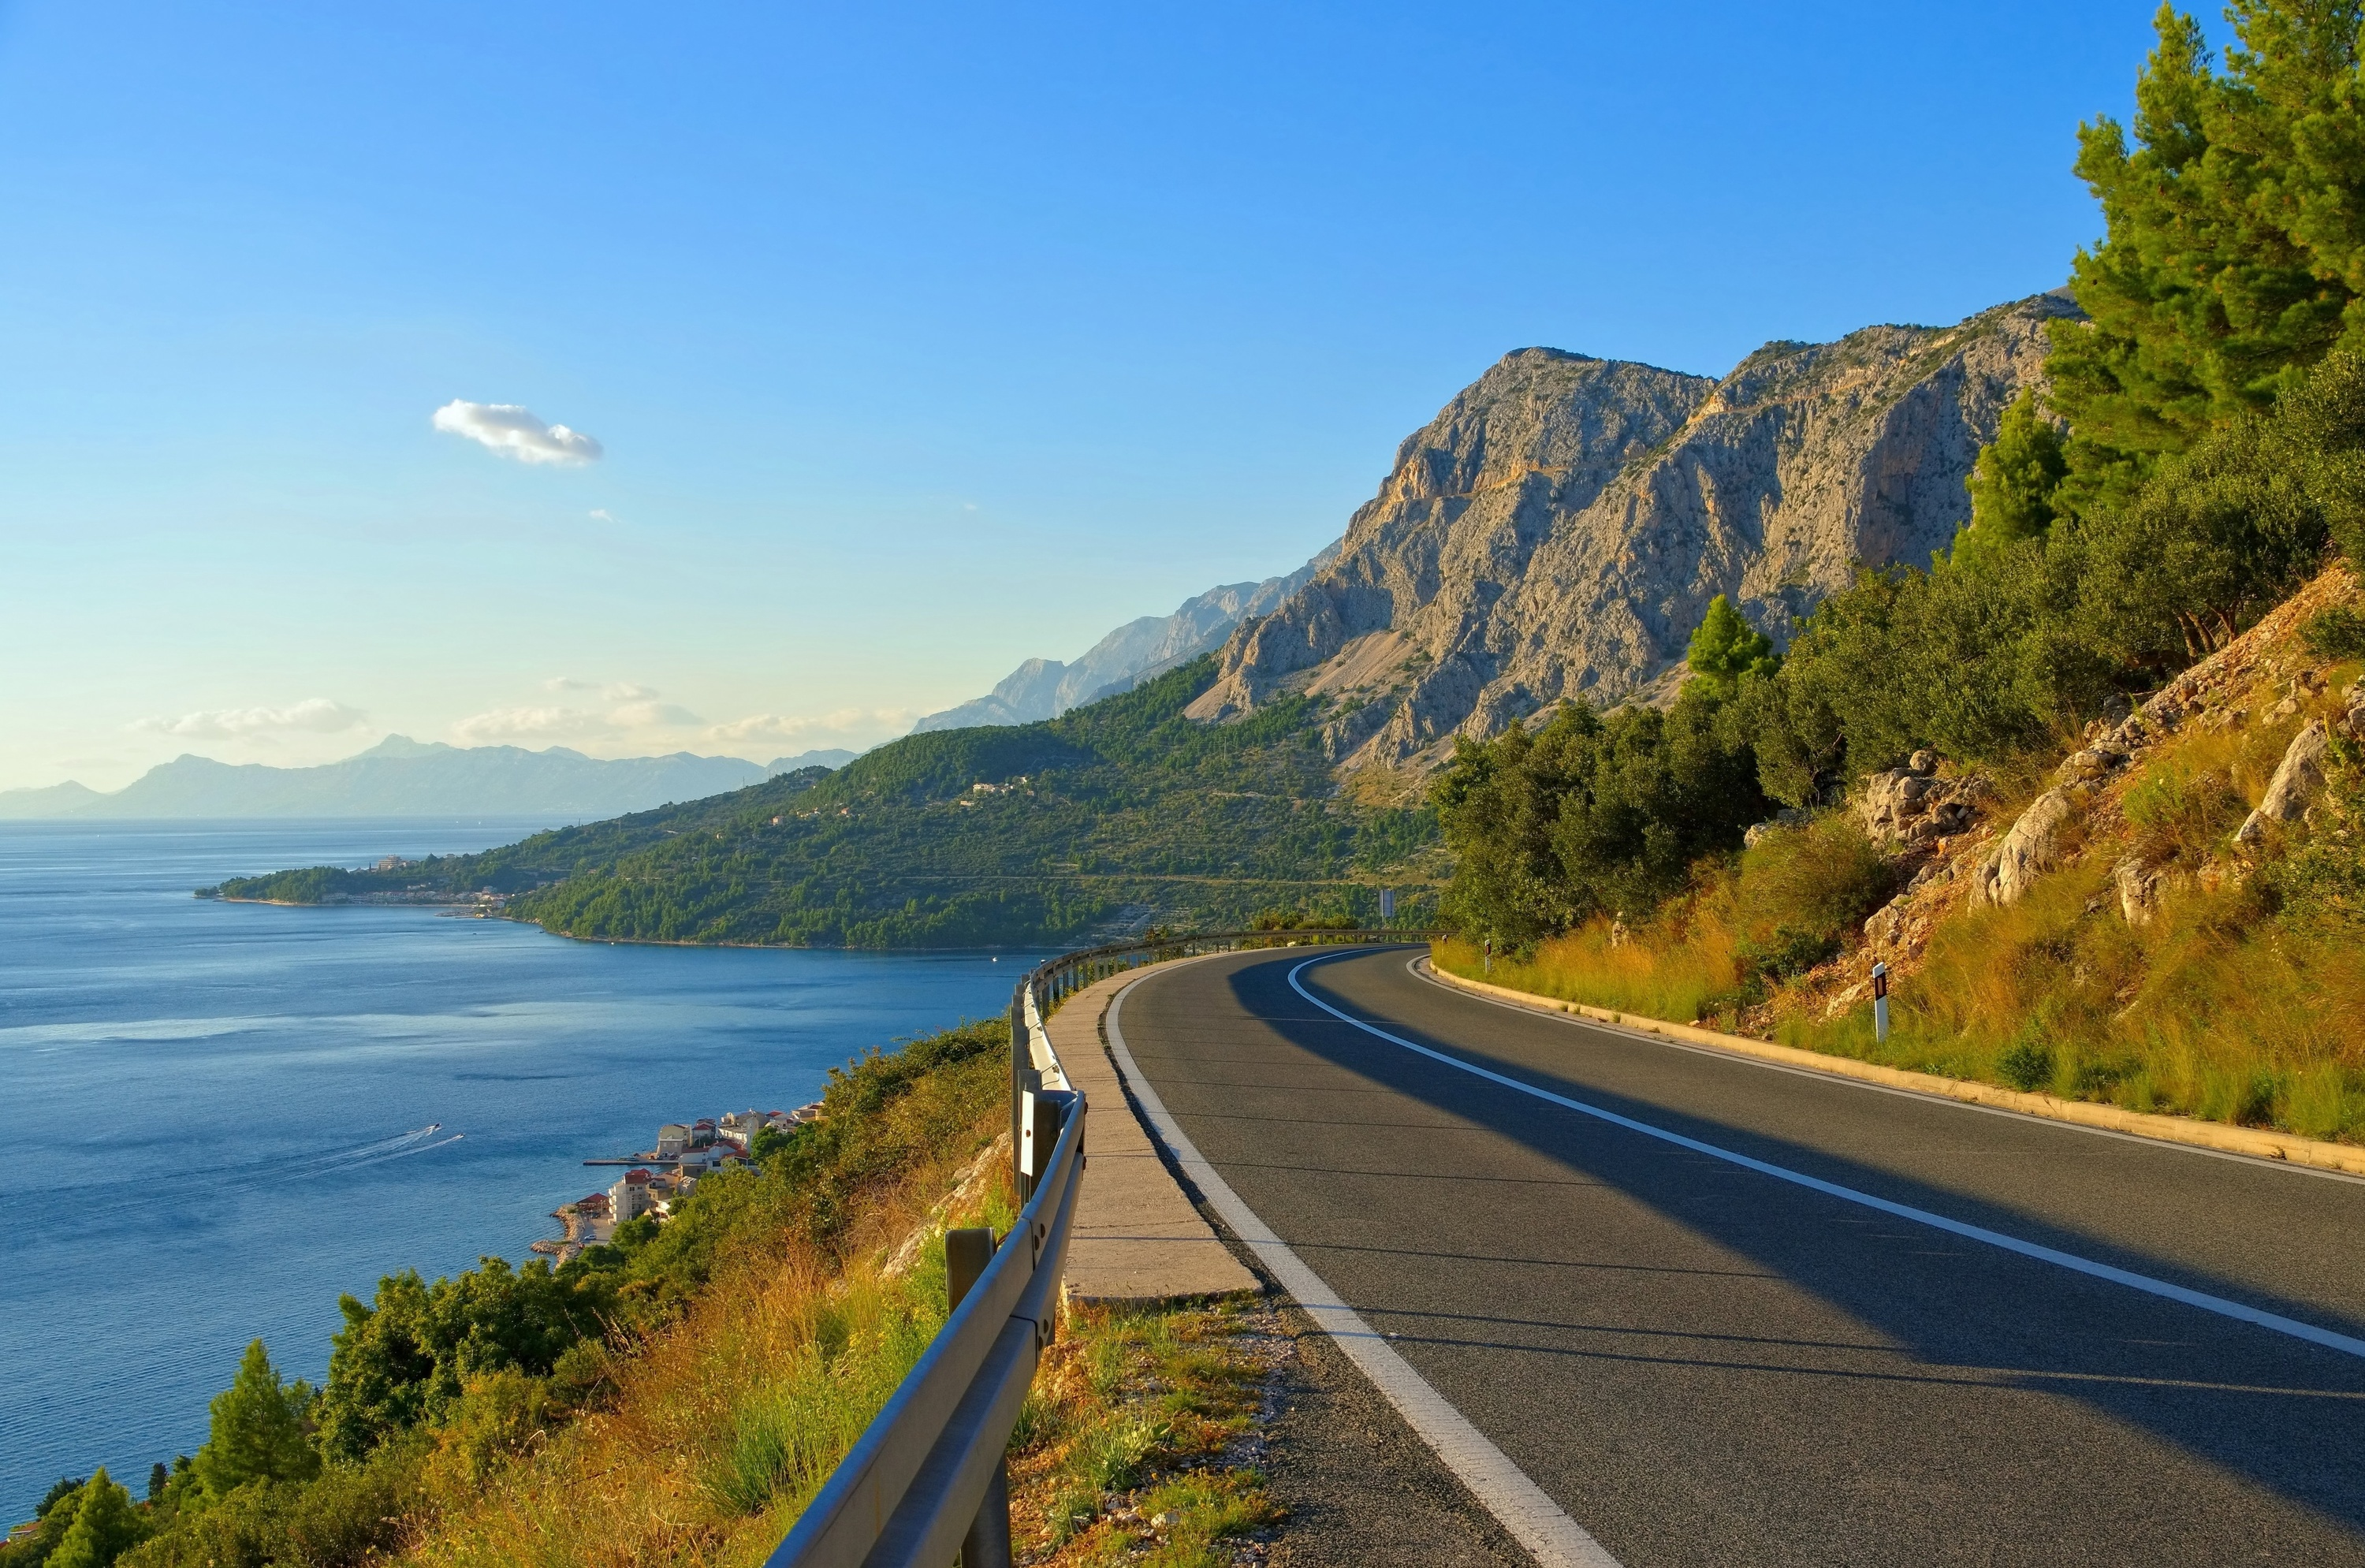 The great Croatian road trip